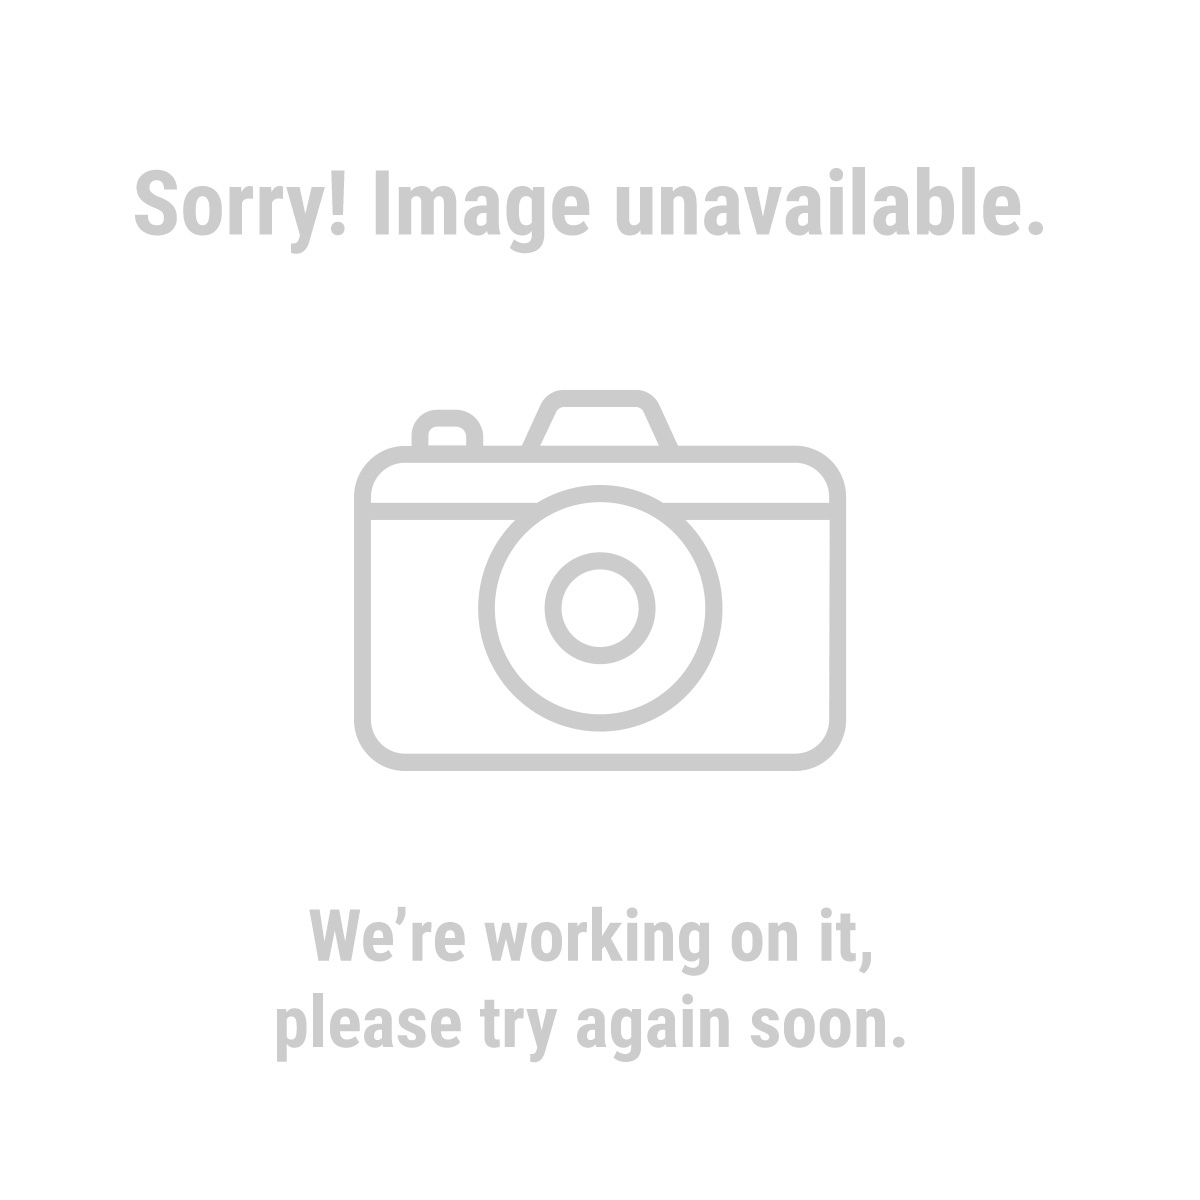 Predator® 63405 2 in. Intake/Discharge 212cc Gasoline Engine Water Pump - 158 GPM